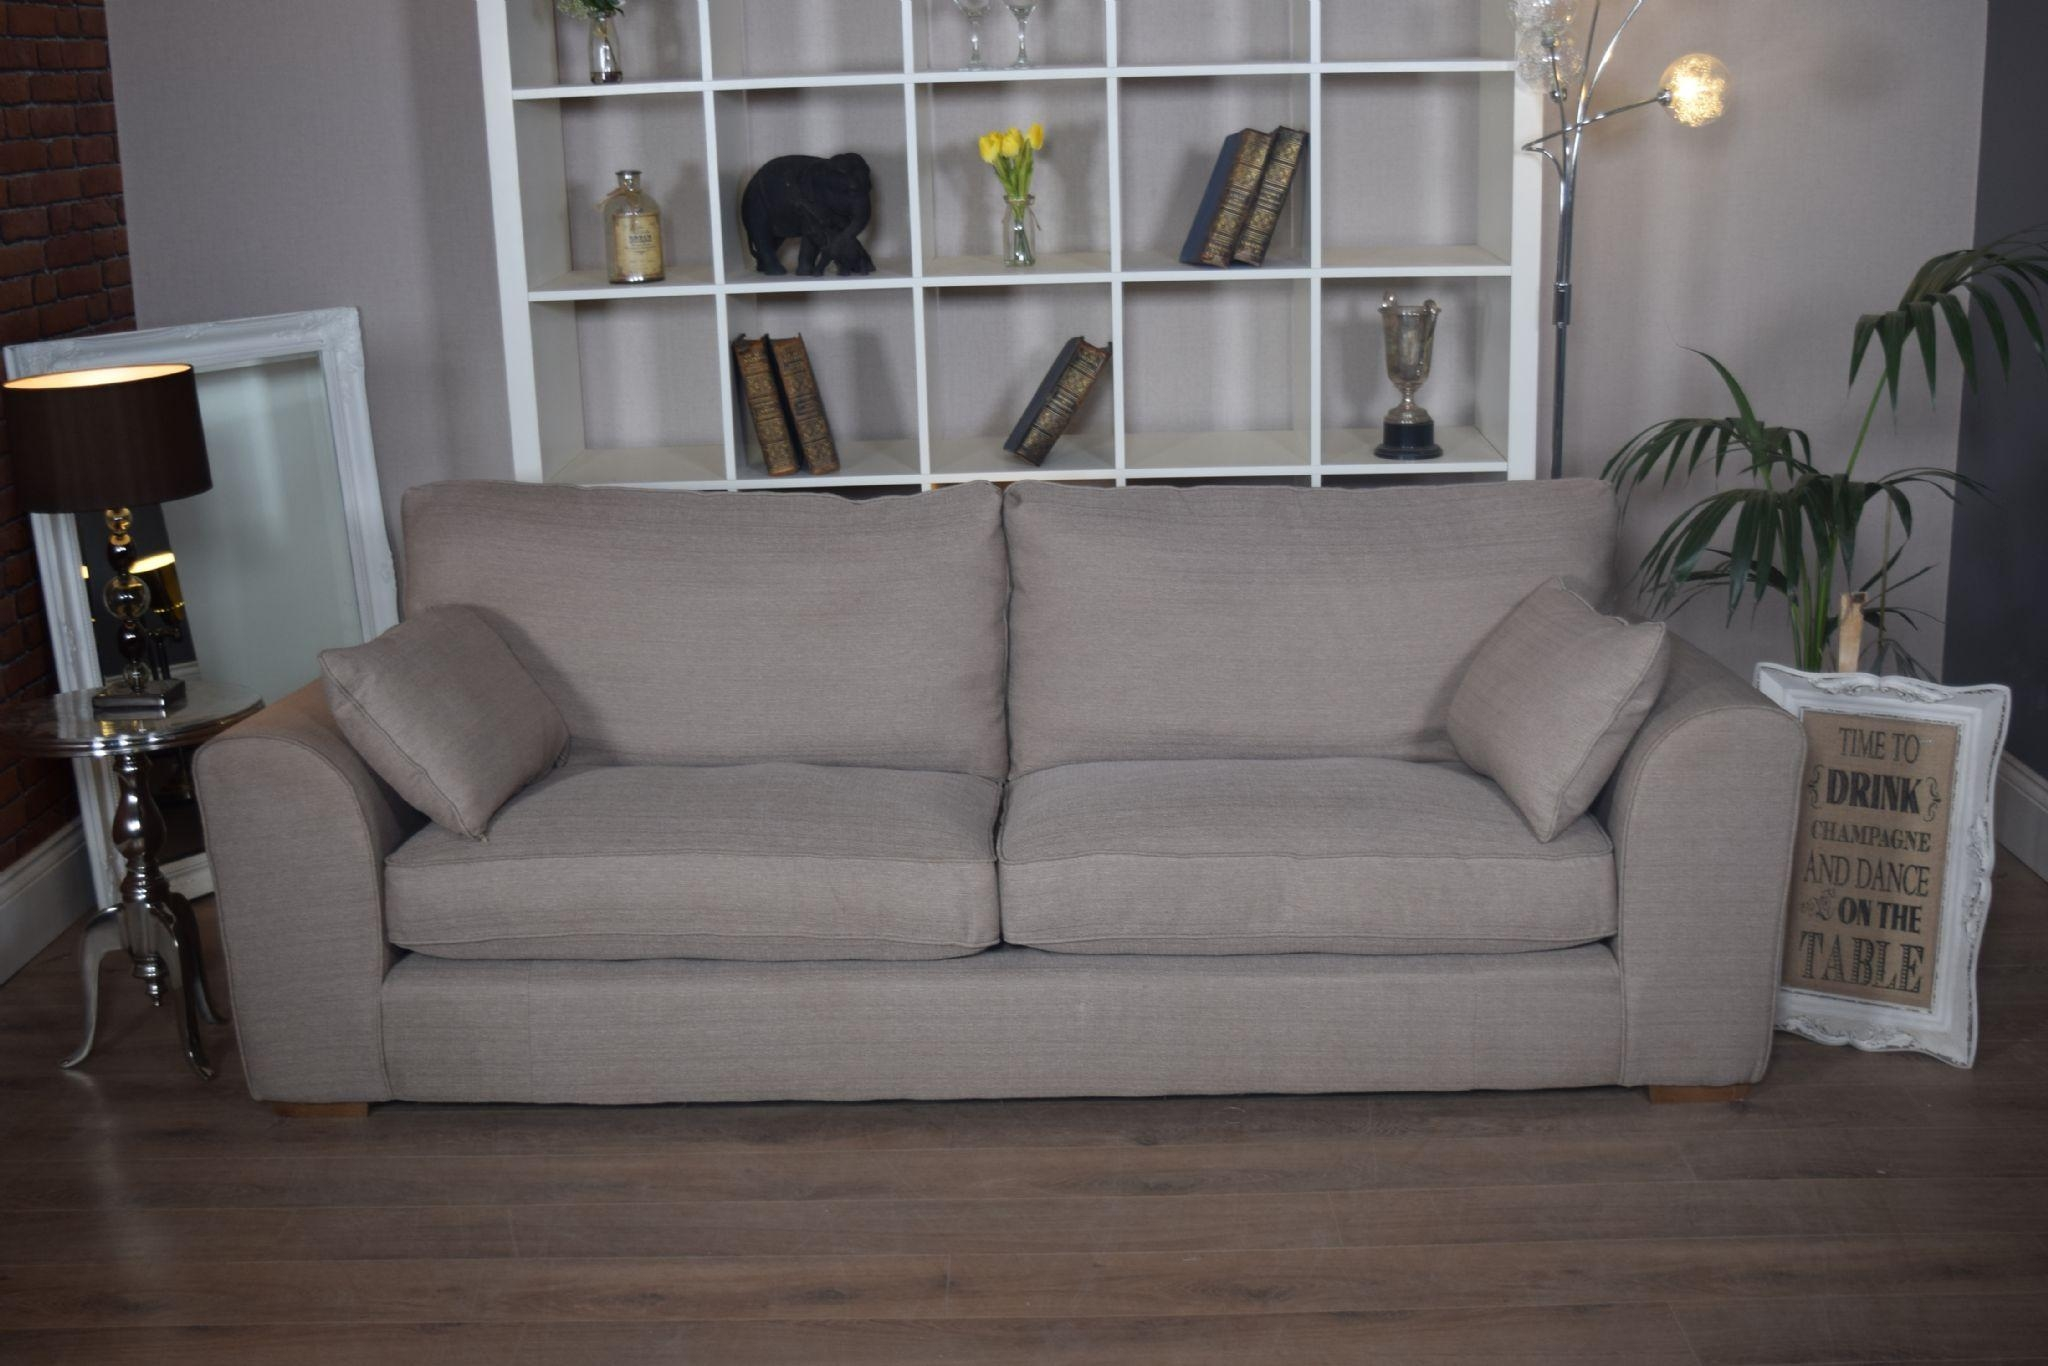 Set New Ashdown 3 Seater Sofa & Cuddle Chair Set – Beige Mink Inside 3 Seater Sofa And Cuddle Chairs (Image 8 of 20)